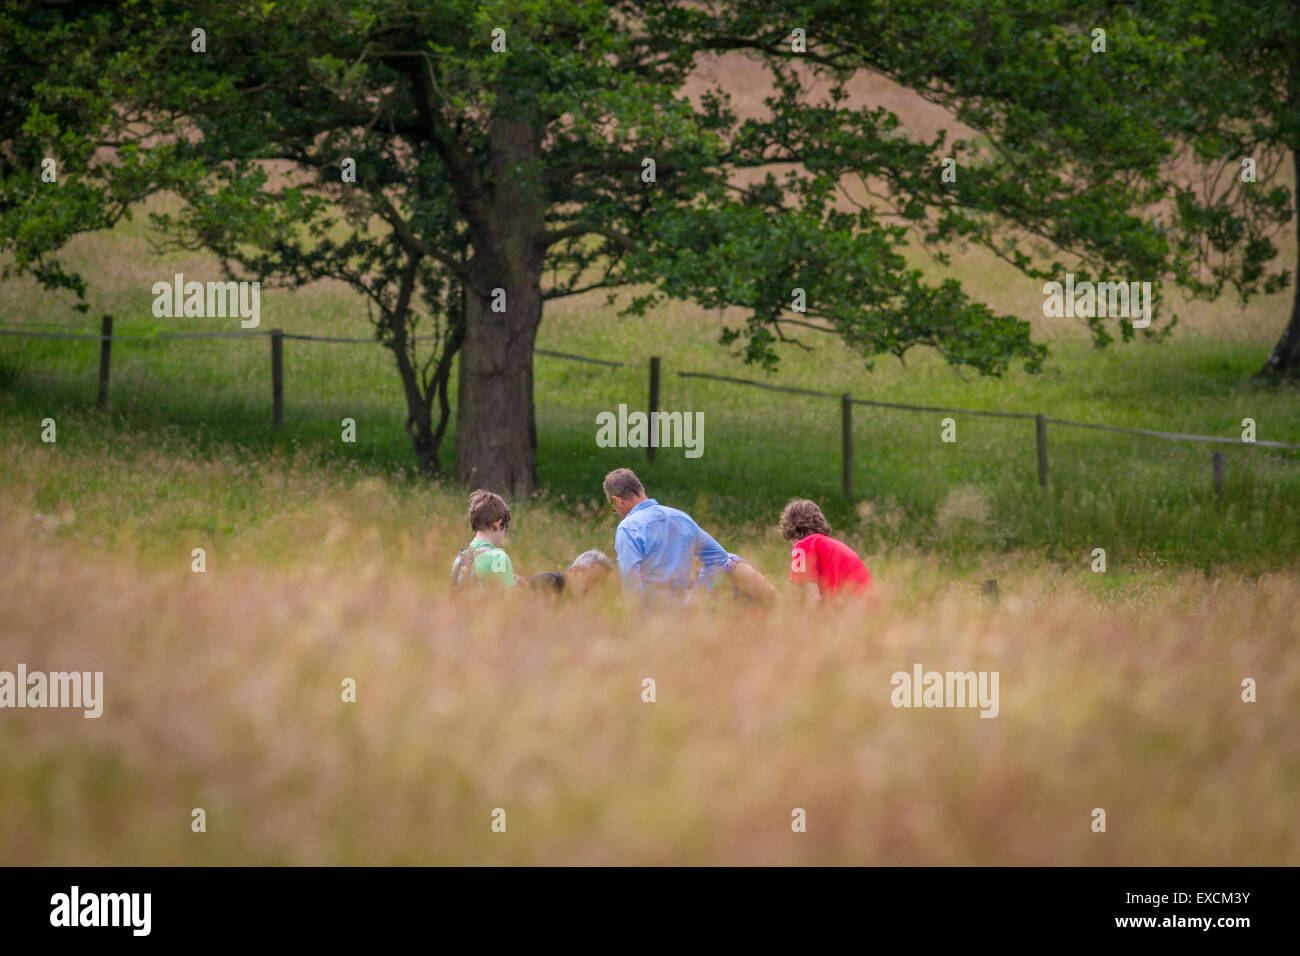 Families enjoying nature in a summer field, Yorkshire, UK - Stock Image